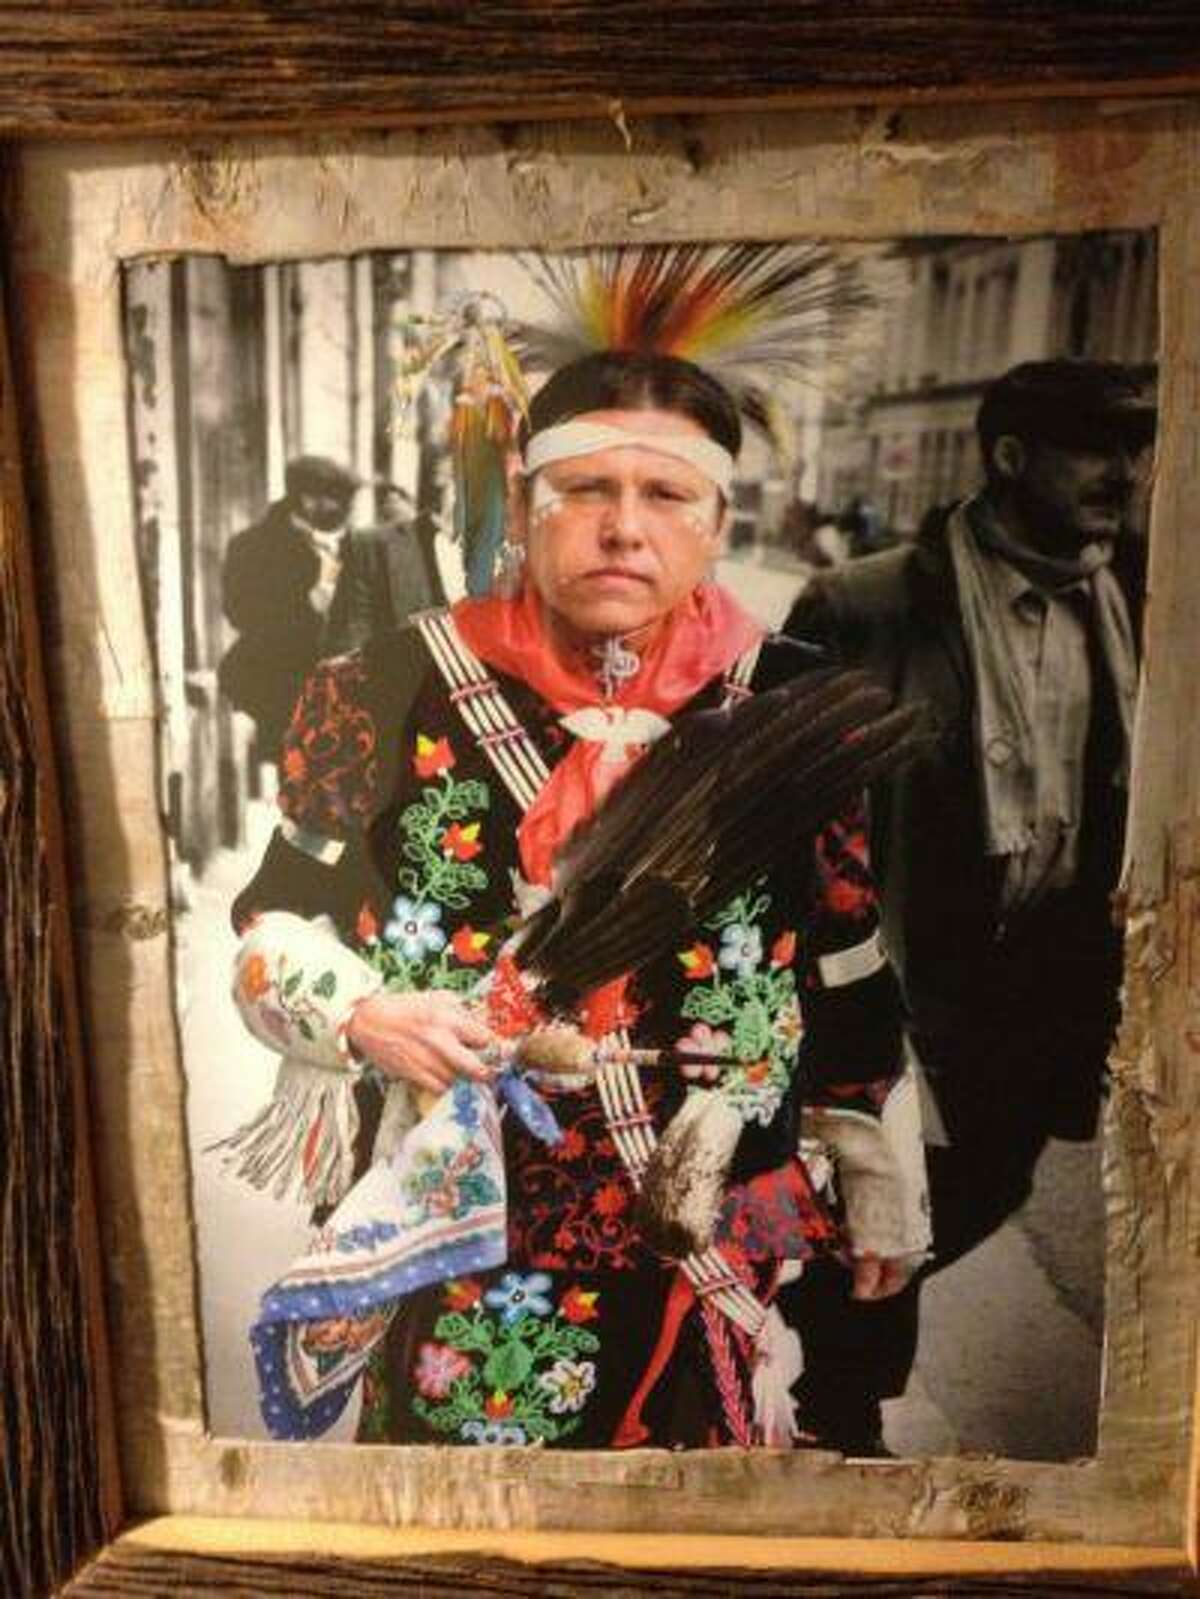 A portrait of a First Nation brave hangs on the wall of Keriwa Cafe, a restaurant in Toronto.